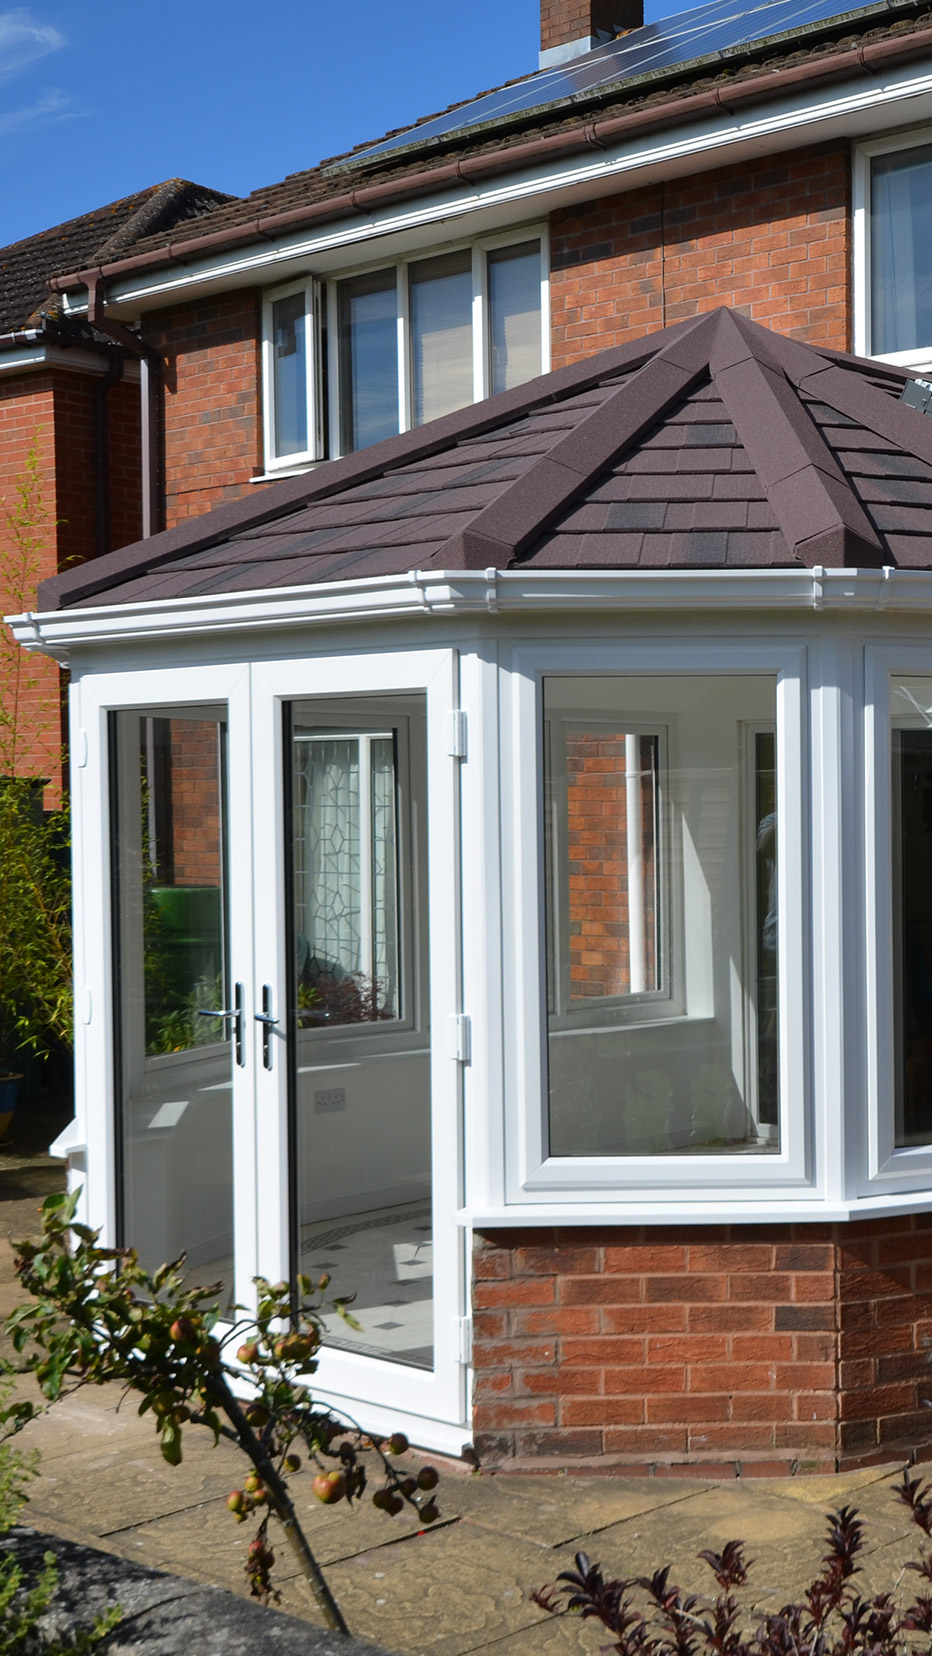 Guardian Warm Roof conservatory roof replacement